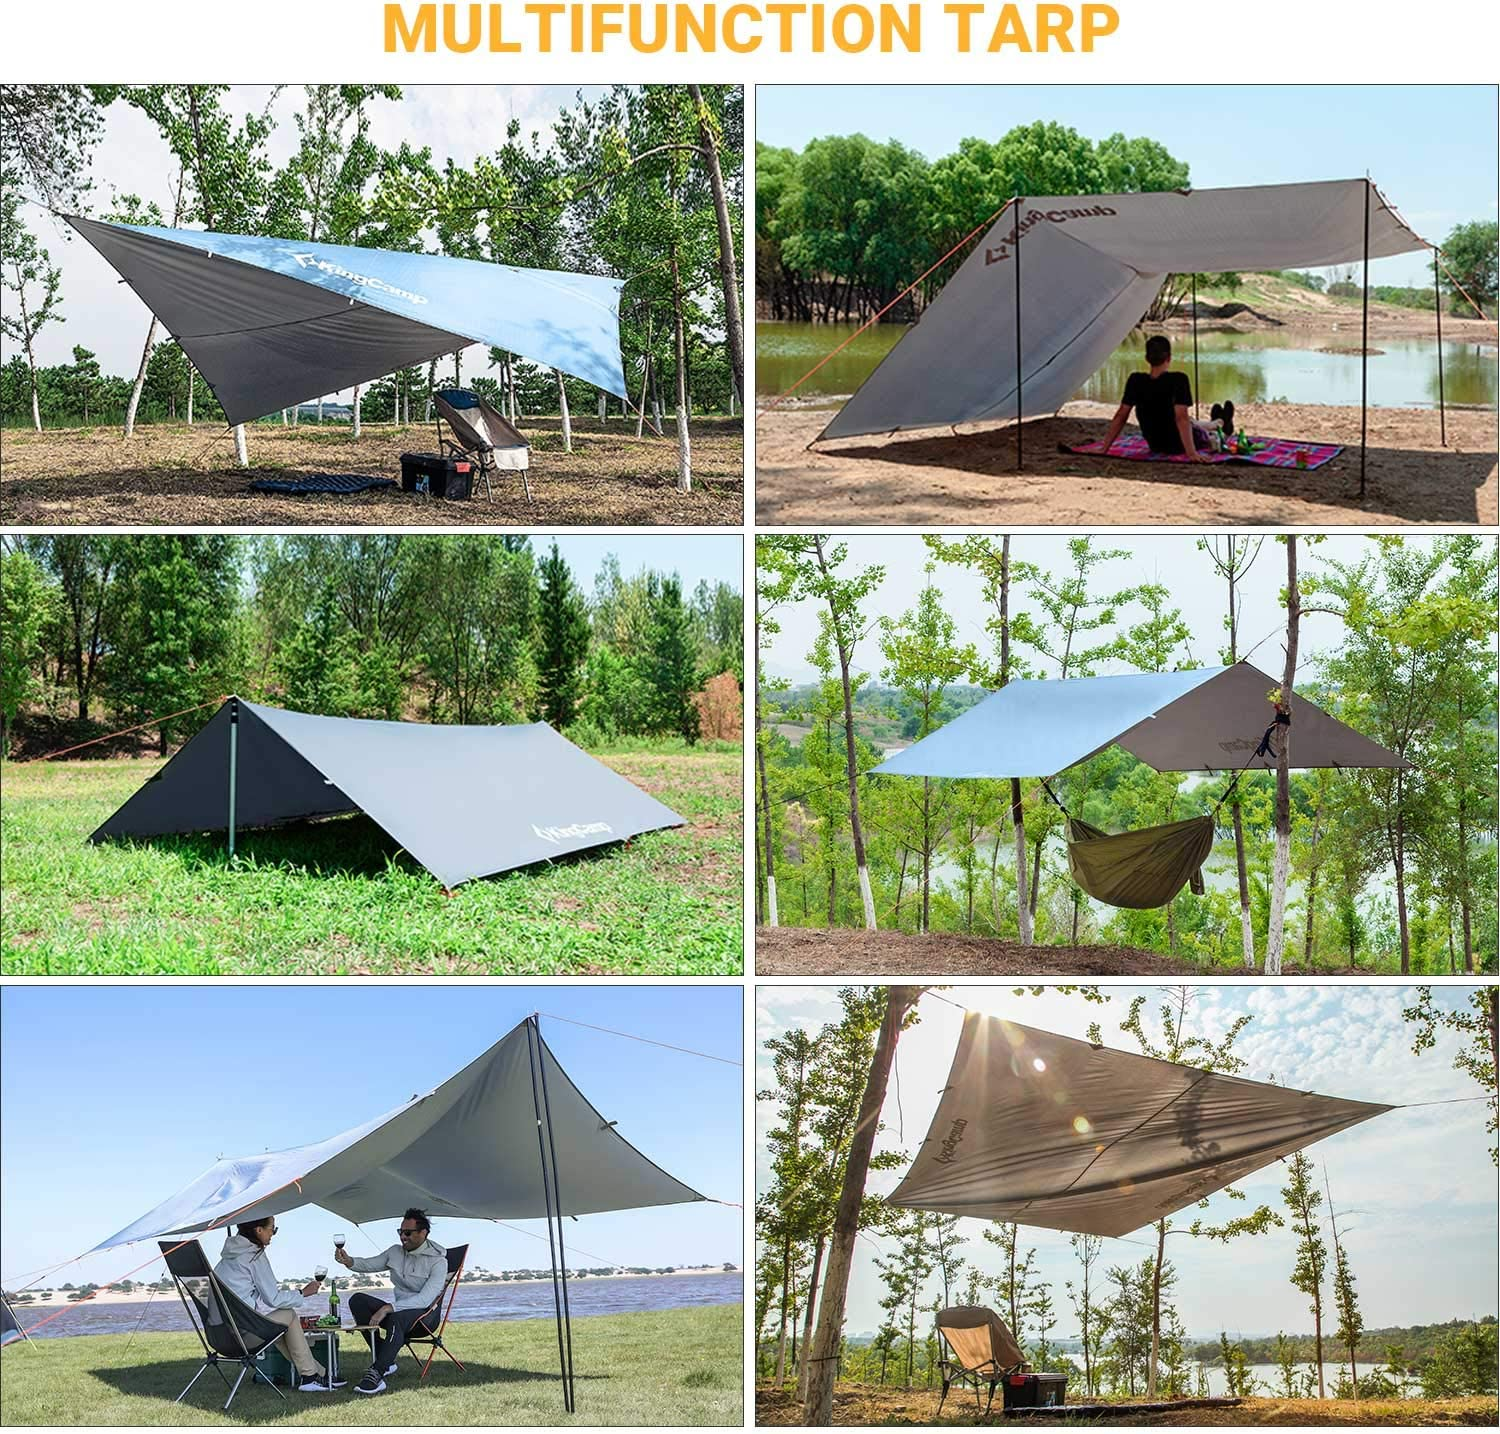 Fishing Waterproof and UV-Resistant Camping Tent Tarp Perfect for Hammock Picnic Or Beach 118.1 x 196.8 inches,Blue Portable KingCamp Rain Fly Tarp-Lightweight Hiking